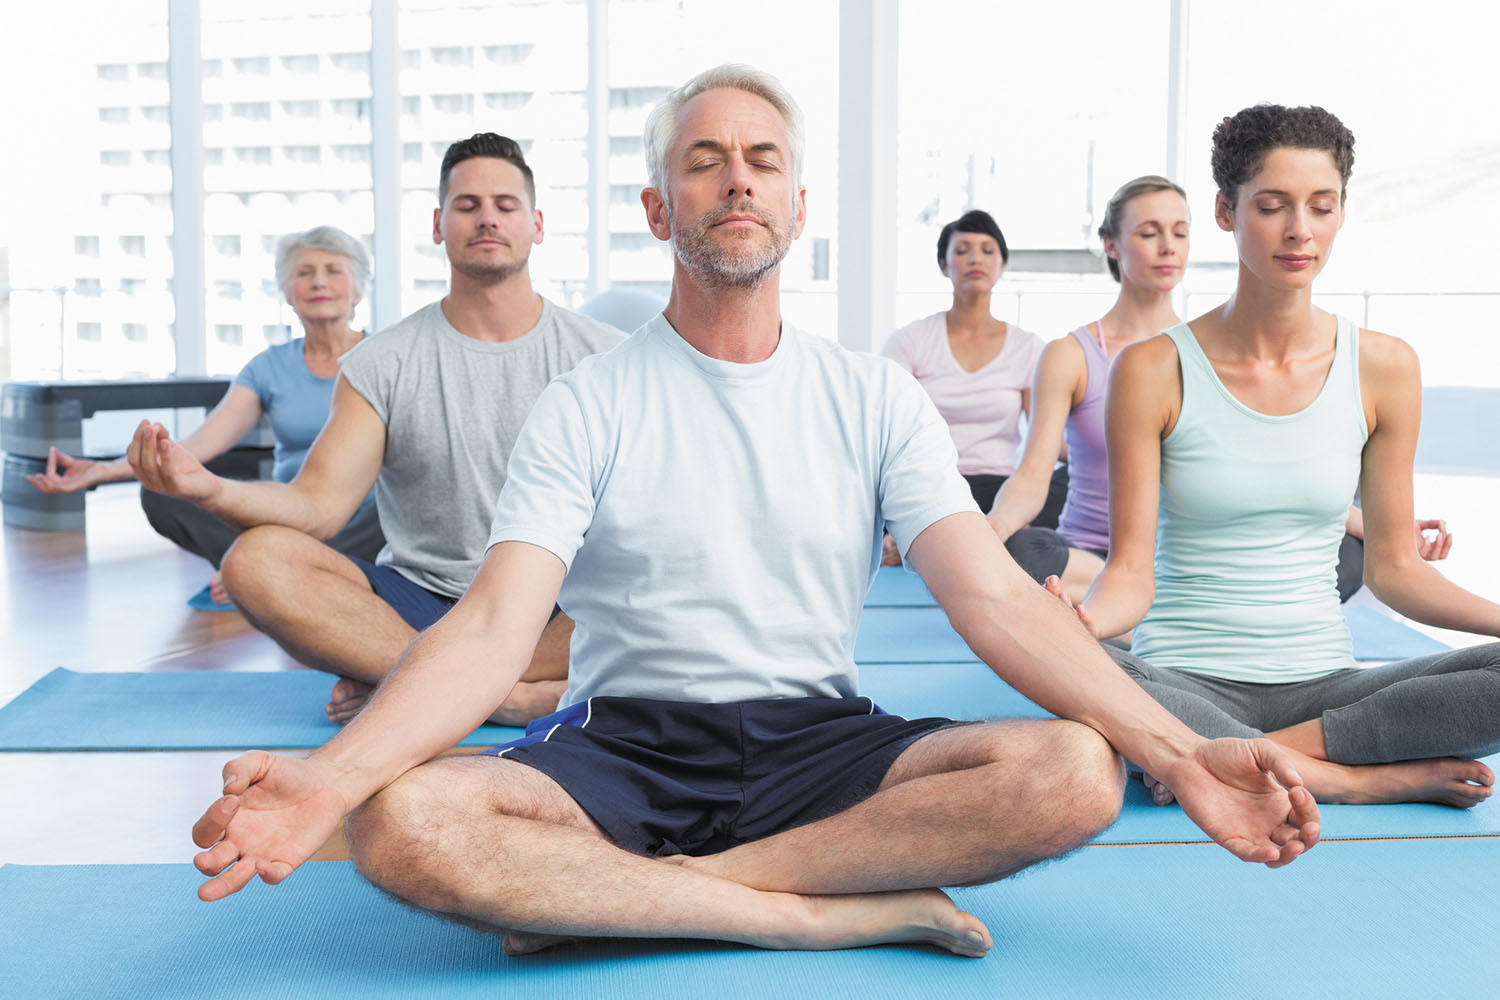 Increased well-being: Another reason to try yoga - Harvard Health